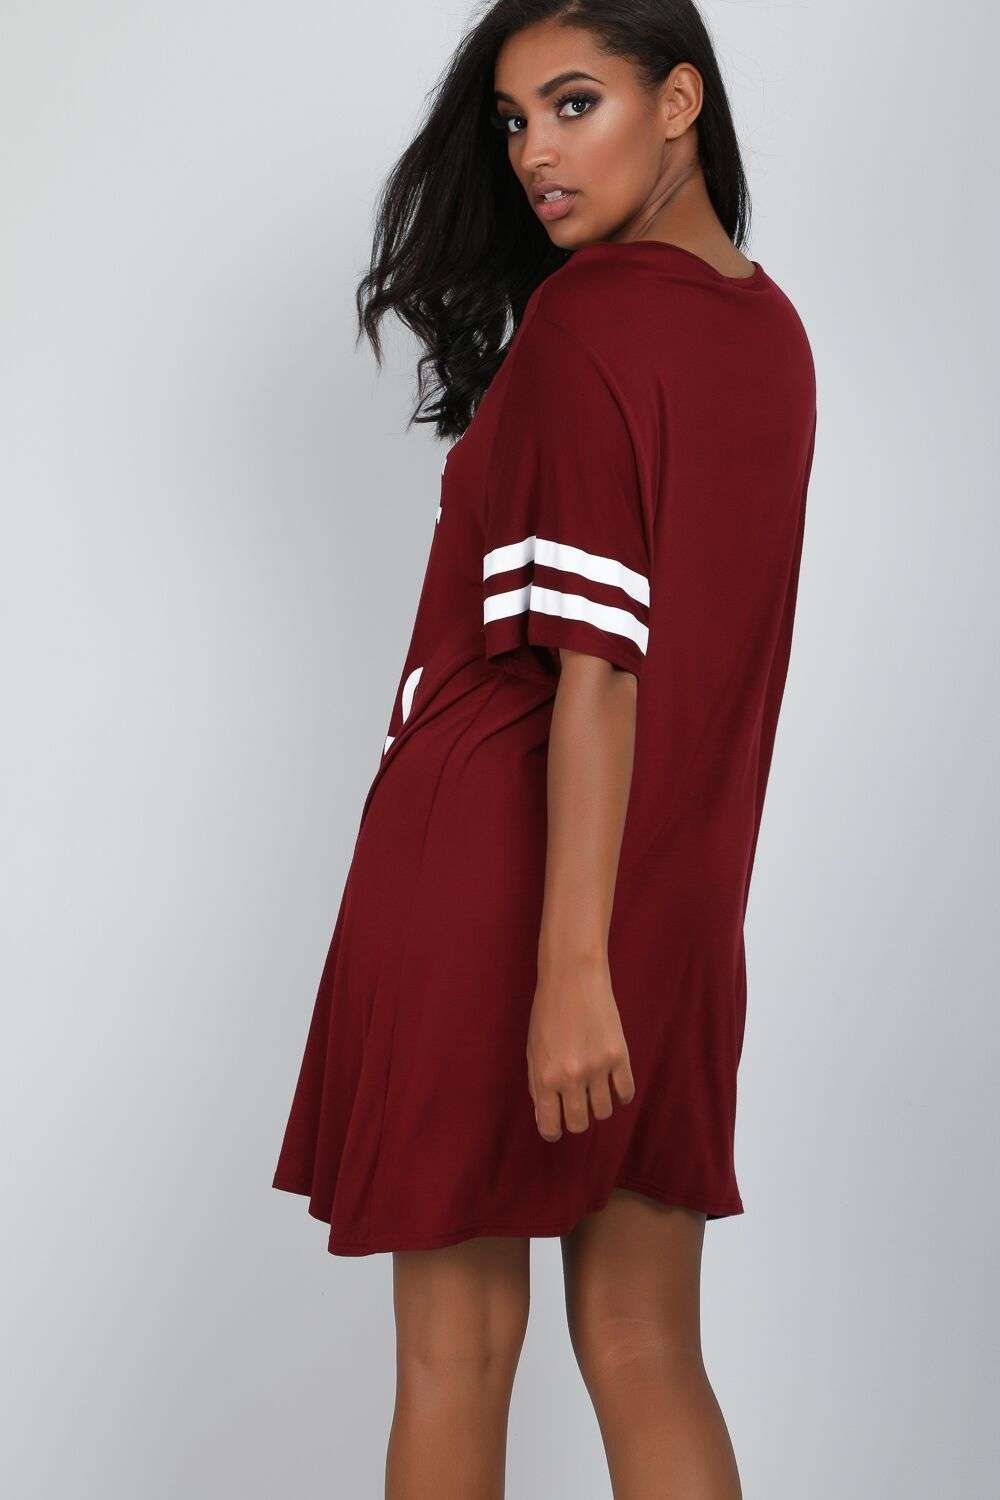 Red I Woke Up Like This Slogan Print Pyjama Dress - bejealous-com